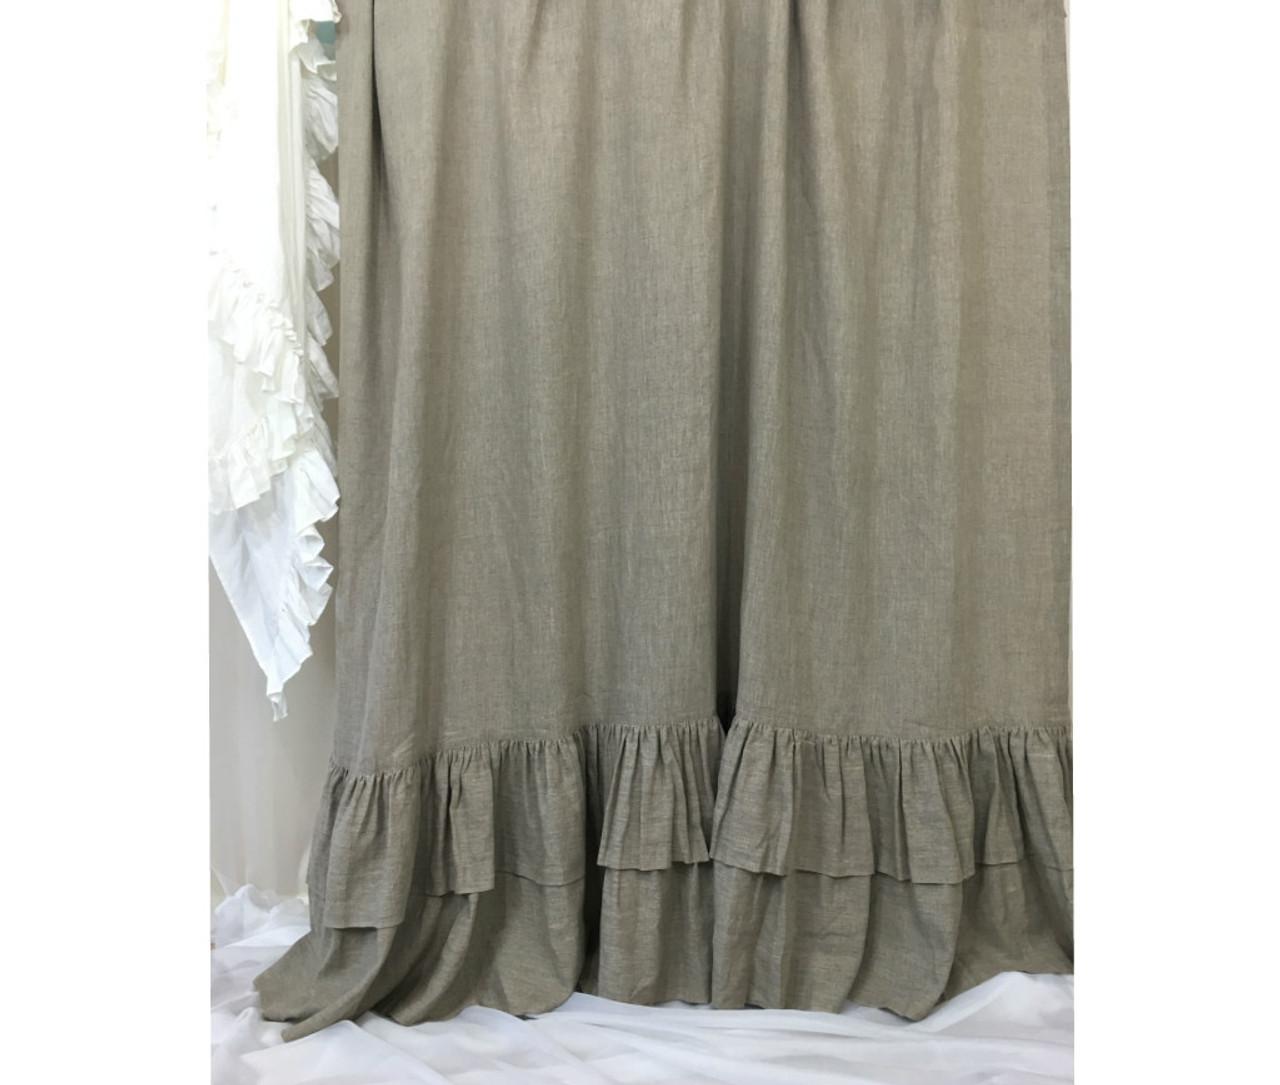 Dark Linen Curtains With Double Layers Of Mermaid Long Ruffles Farm House Style